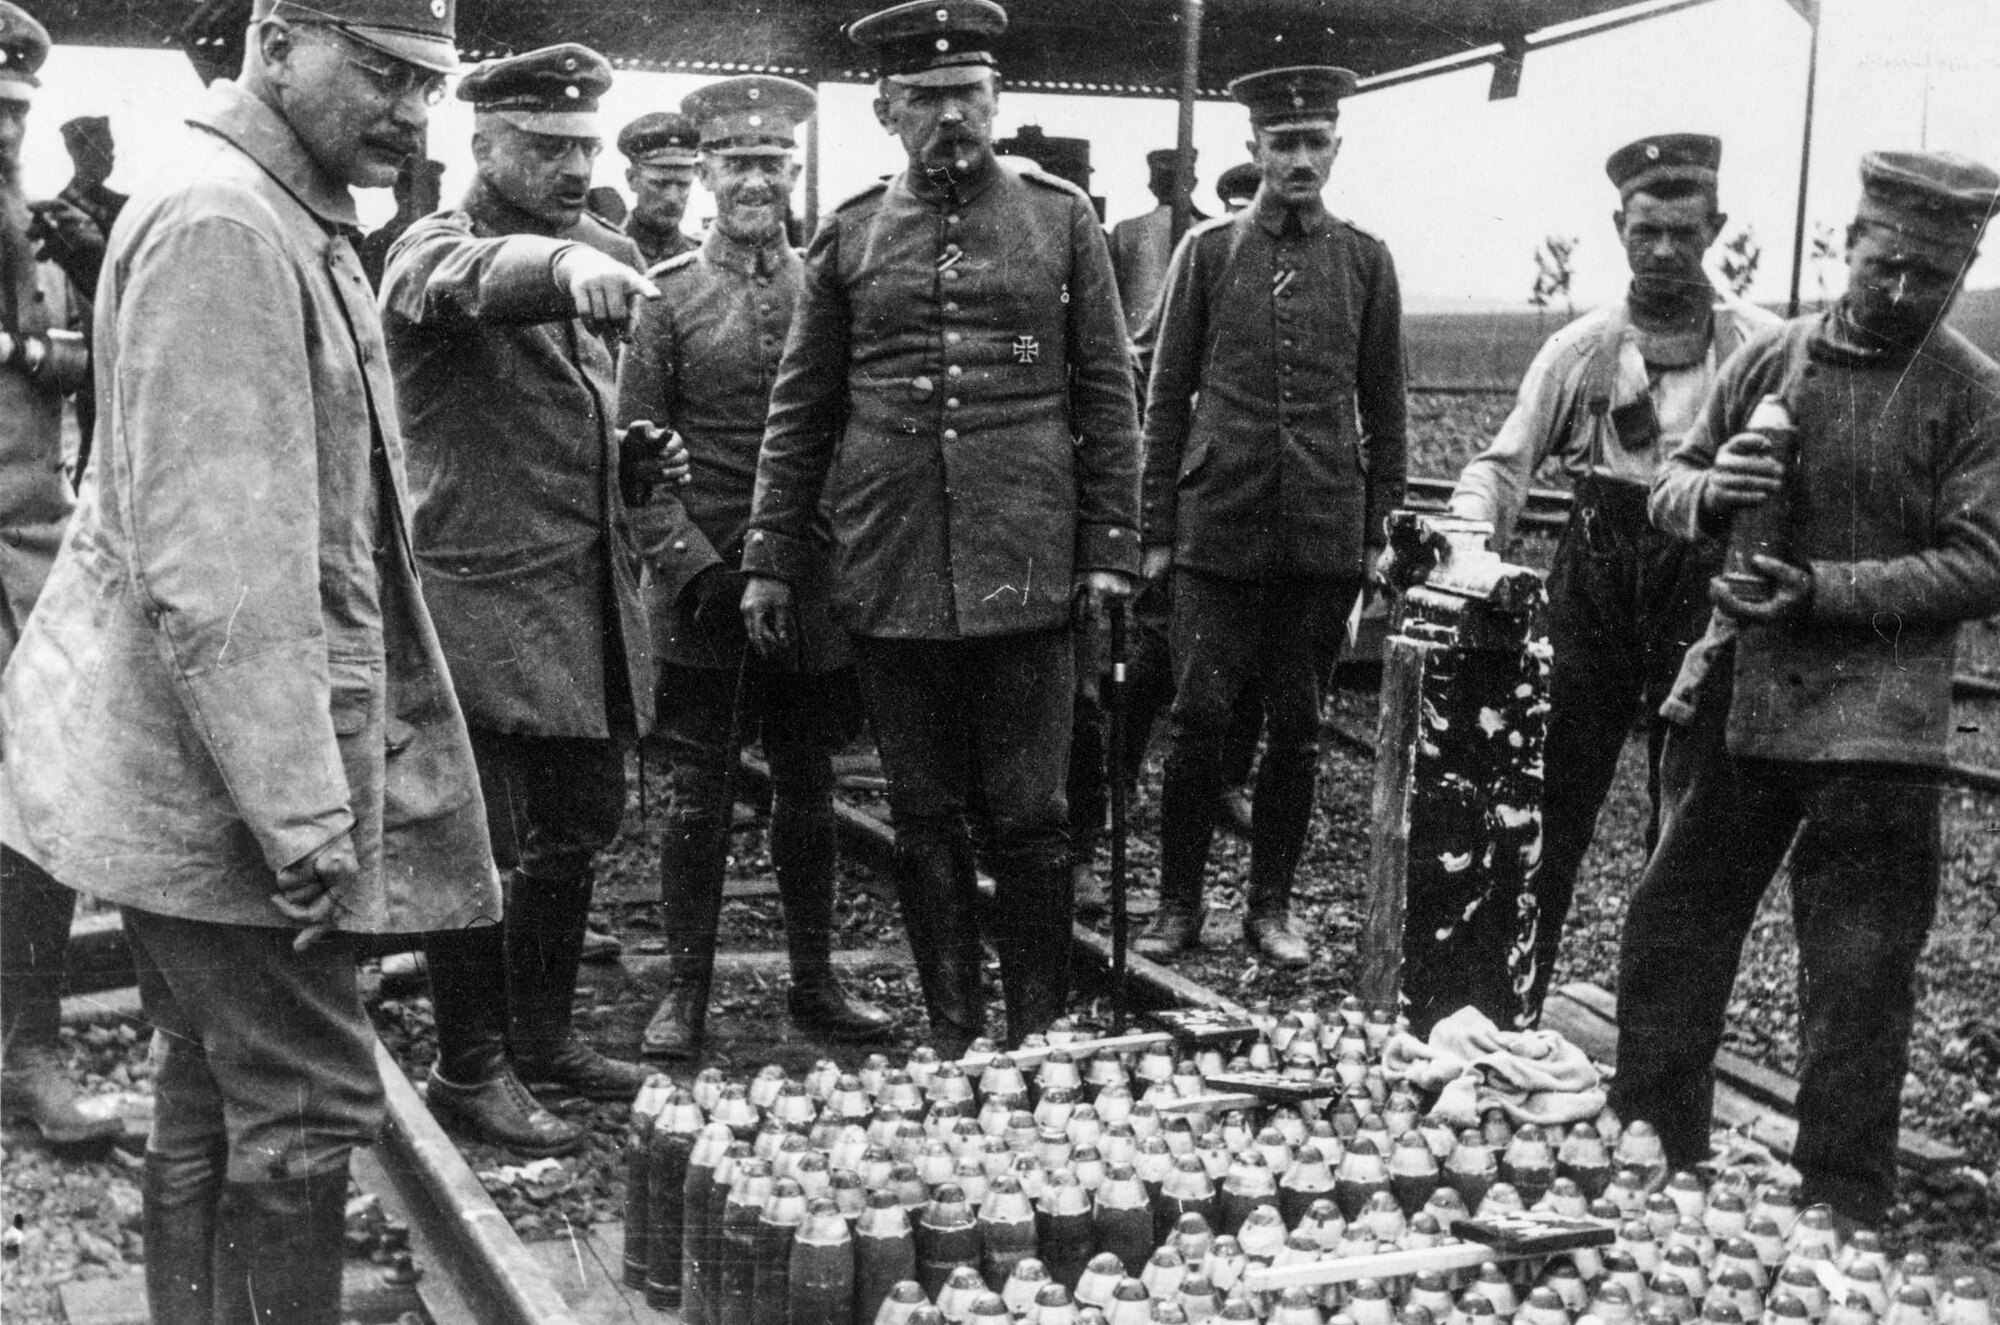 Haber at the Front in WWI